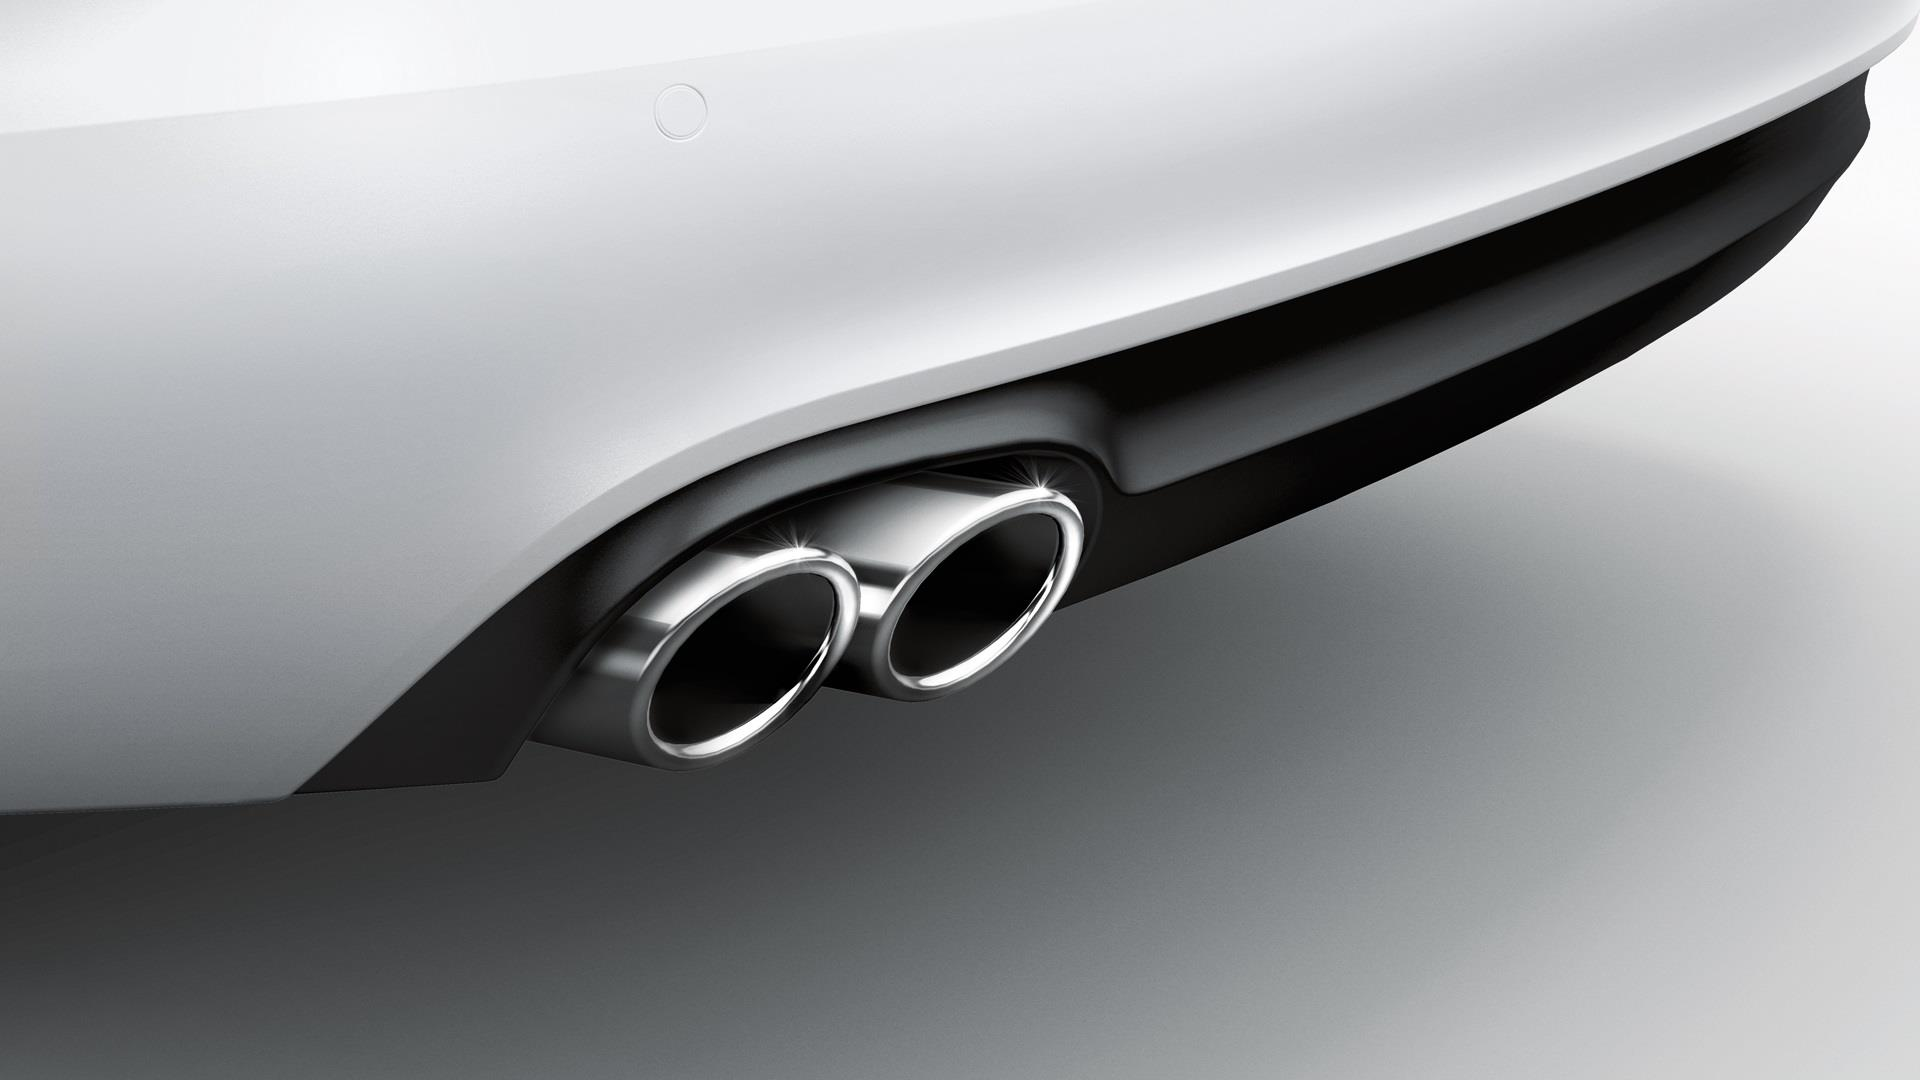 audi s5 exhaust tips chrome pipe 8k0071761 audi. Black Bedroom Furniture Sets. Home Design Ideas